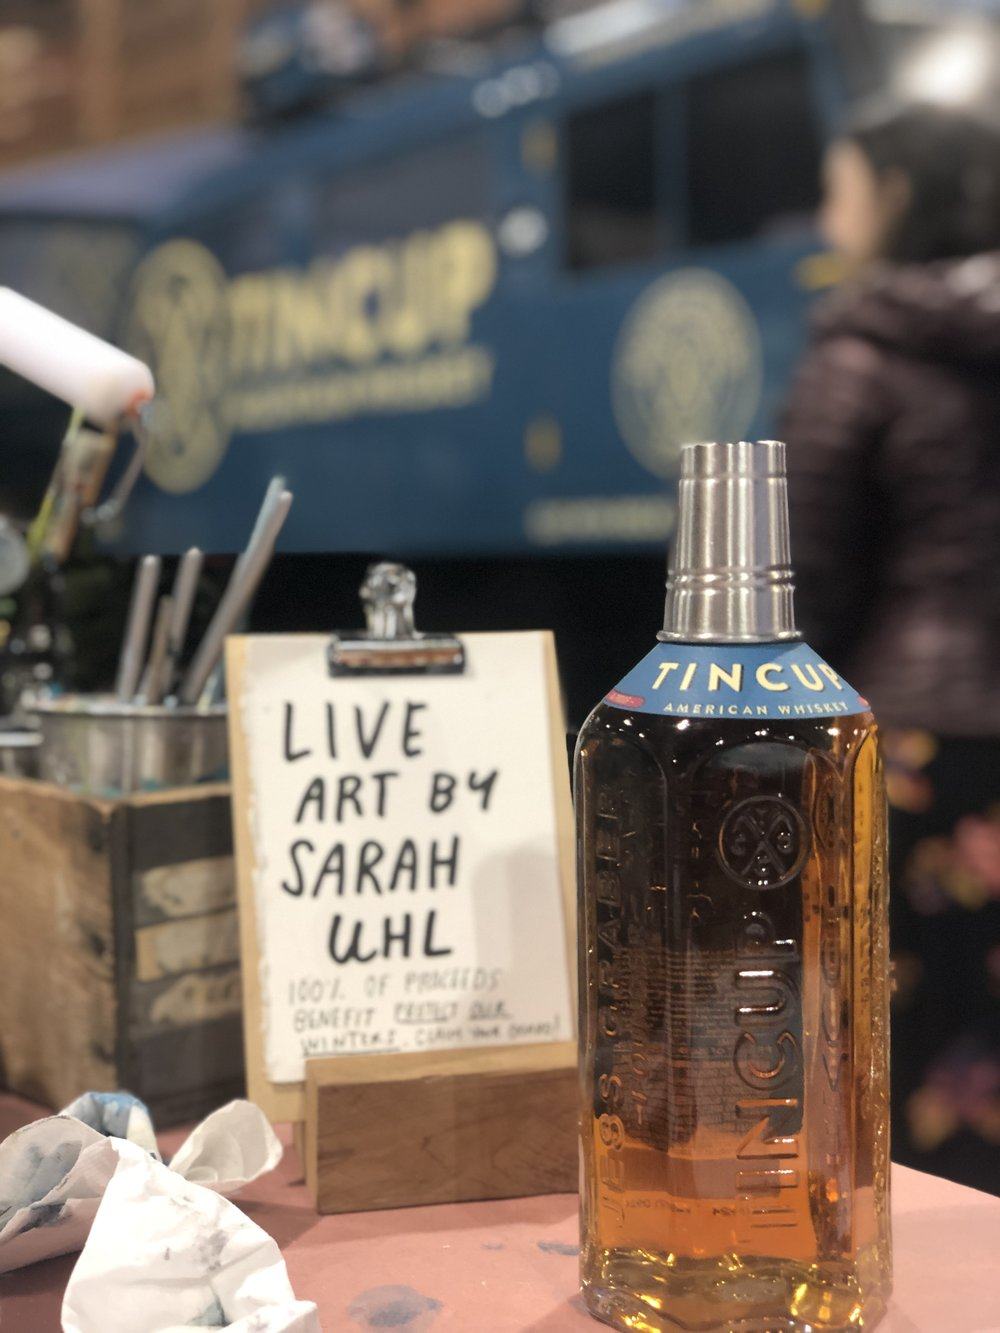 Tincup Mountain Whiskey hosted my live art activation in their booth space during the OR show